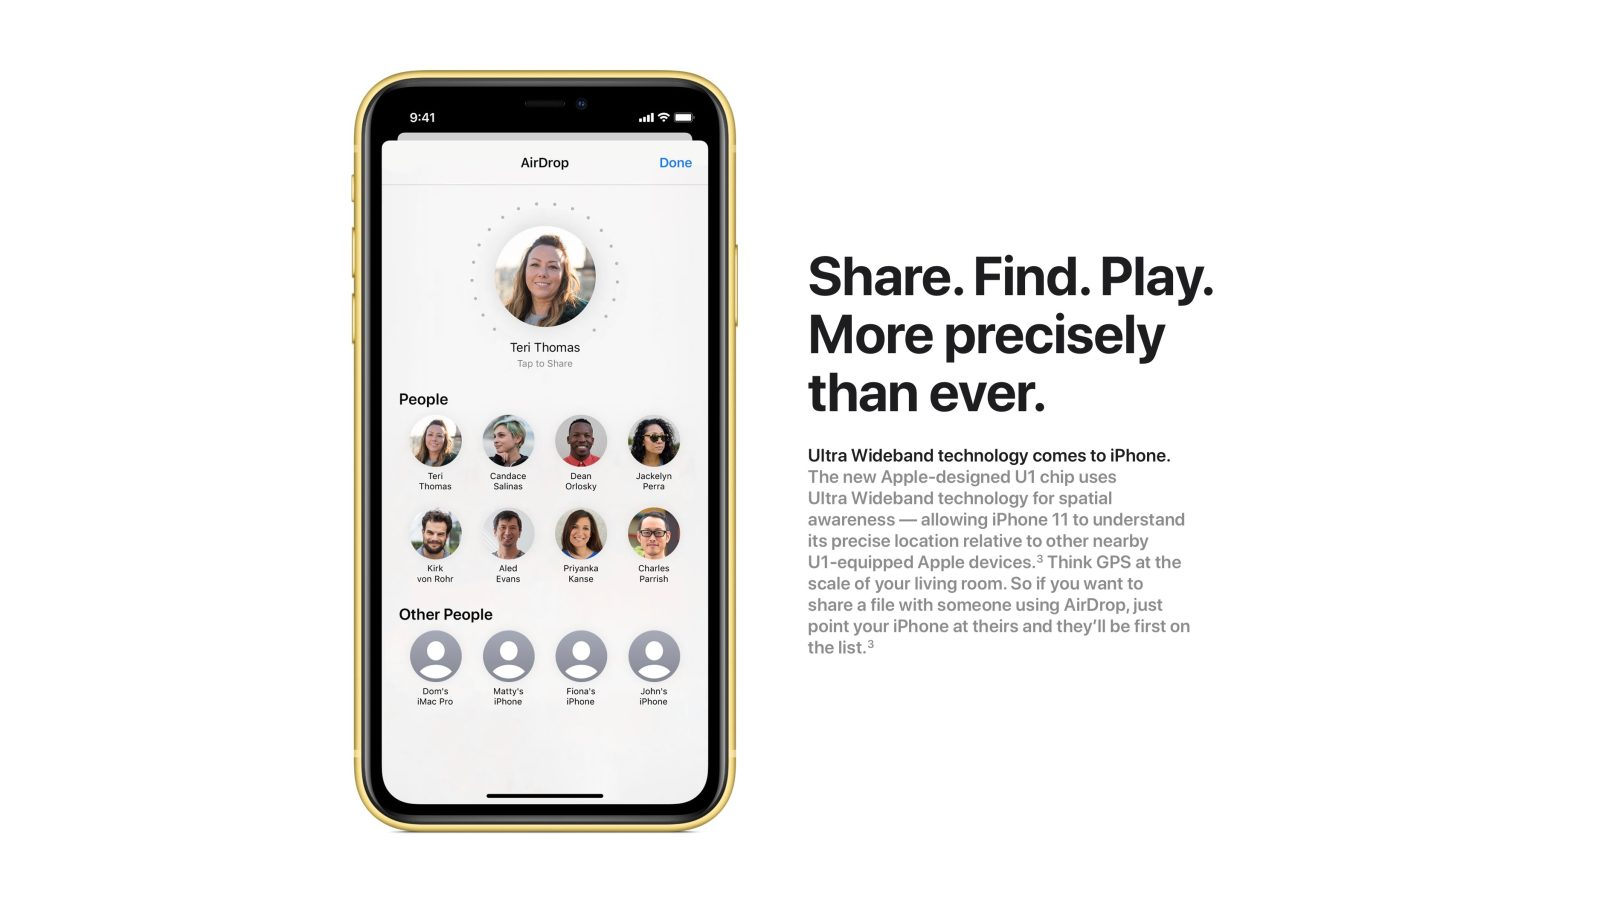 Apple releases iOS 13.1 with new AirDrop features for iPhone 11 and more